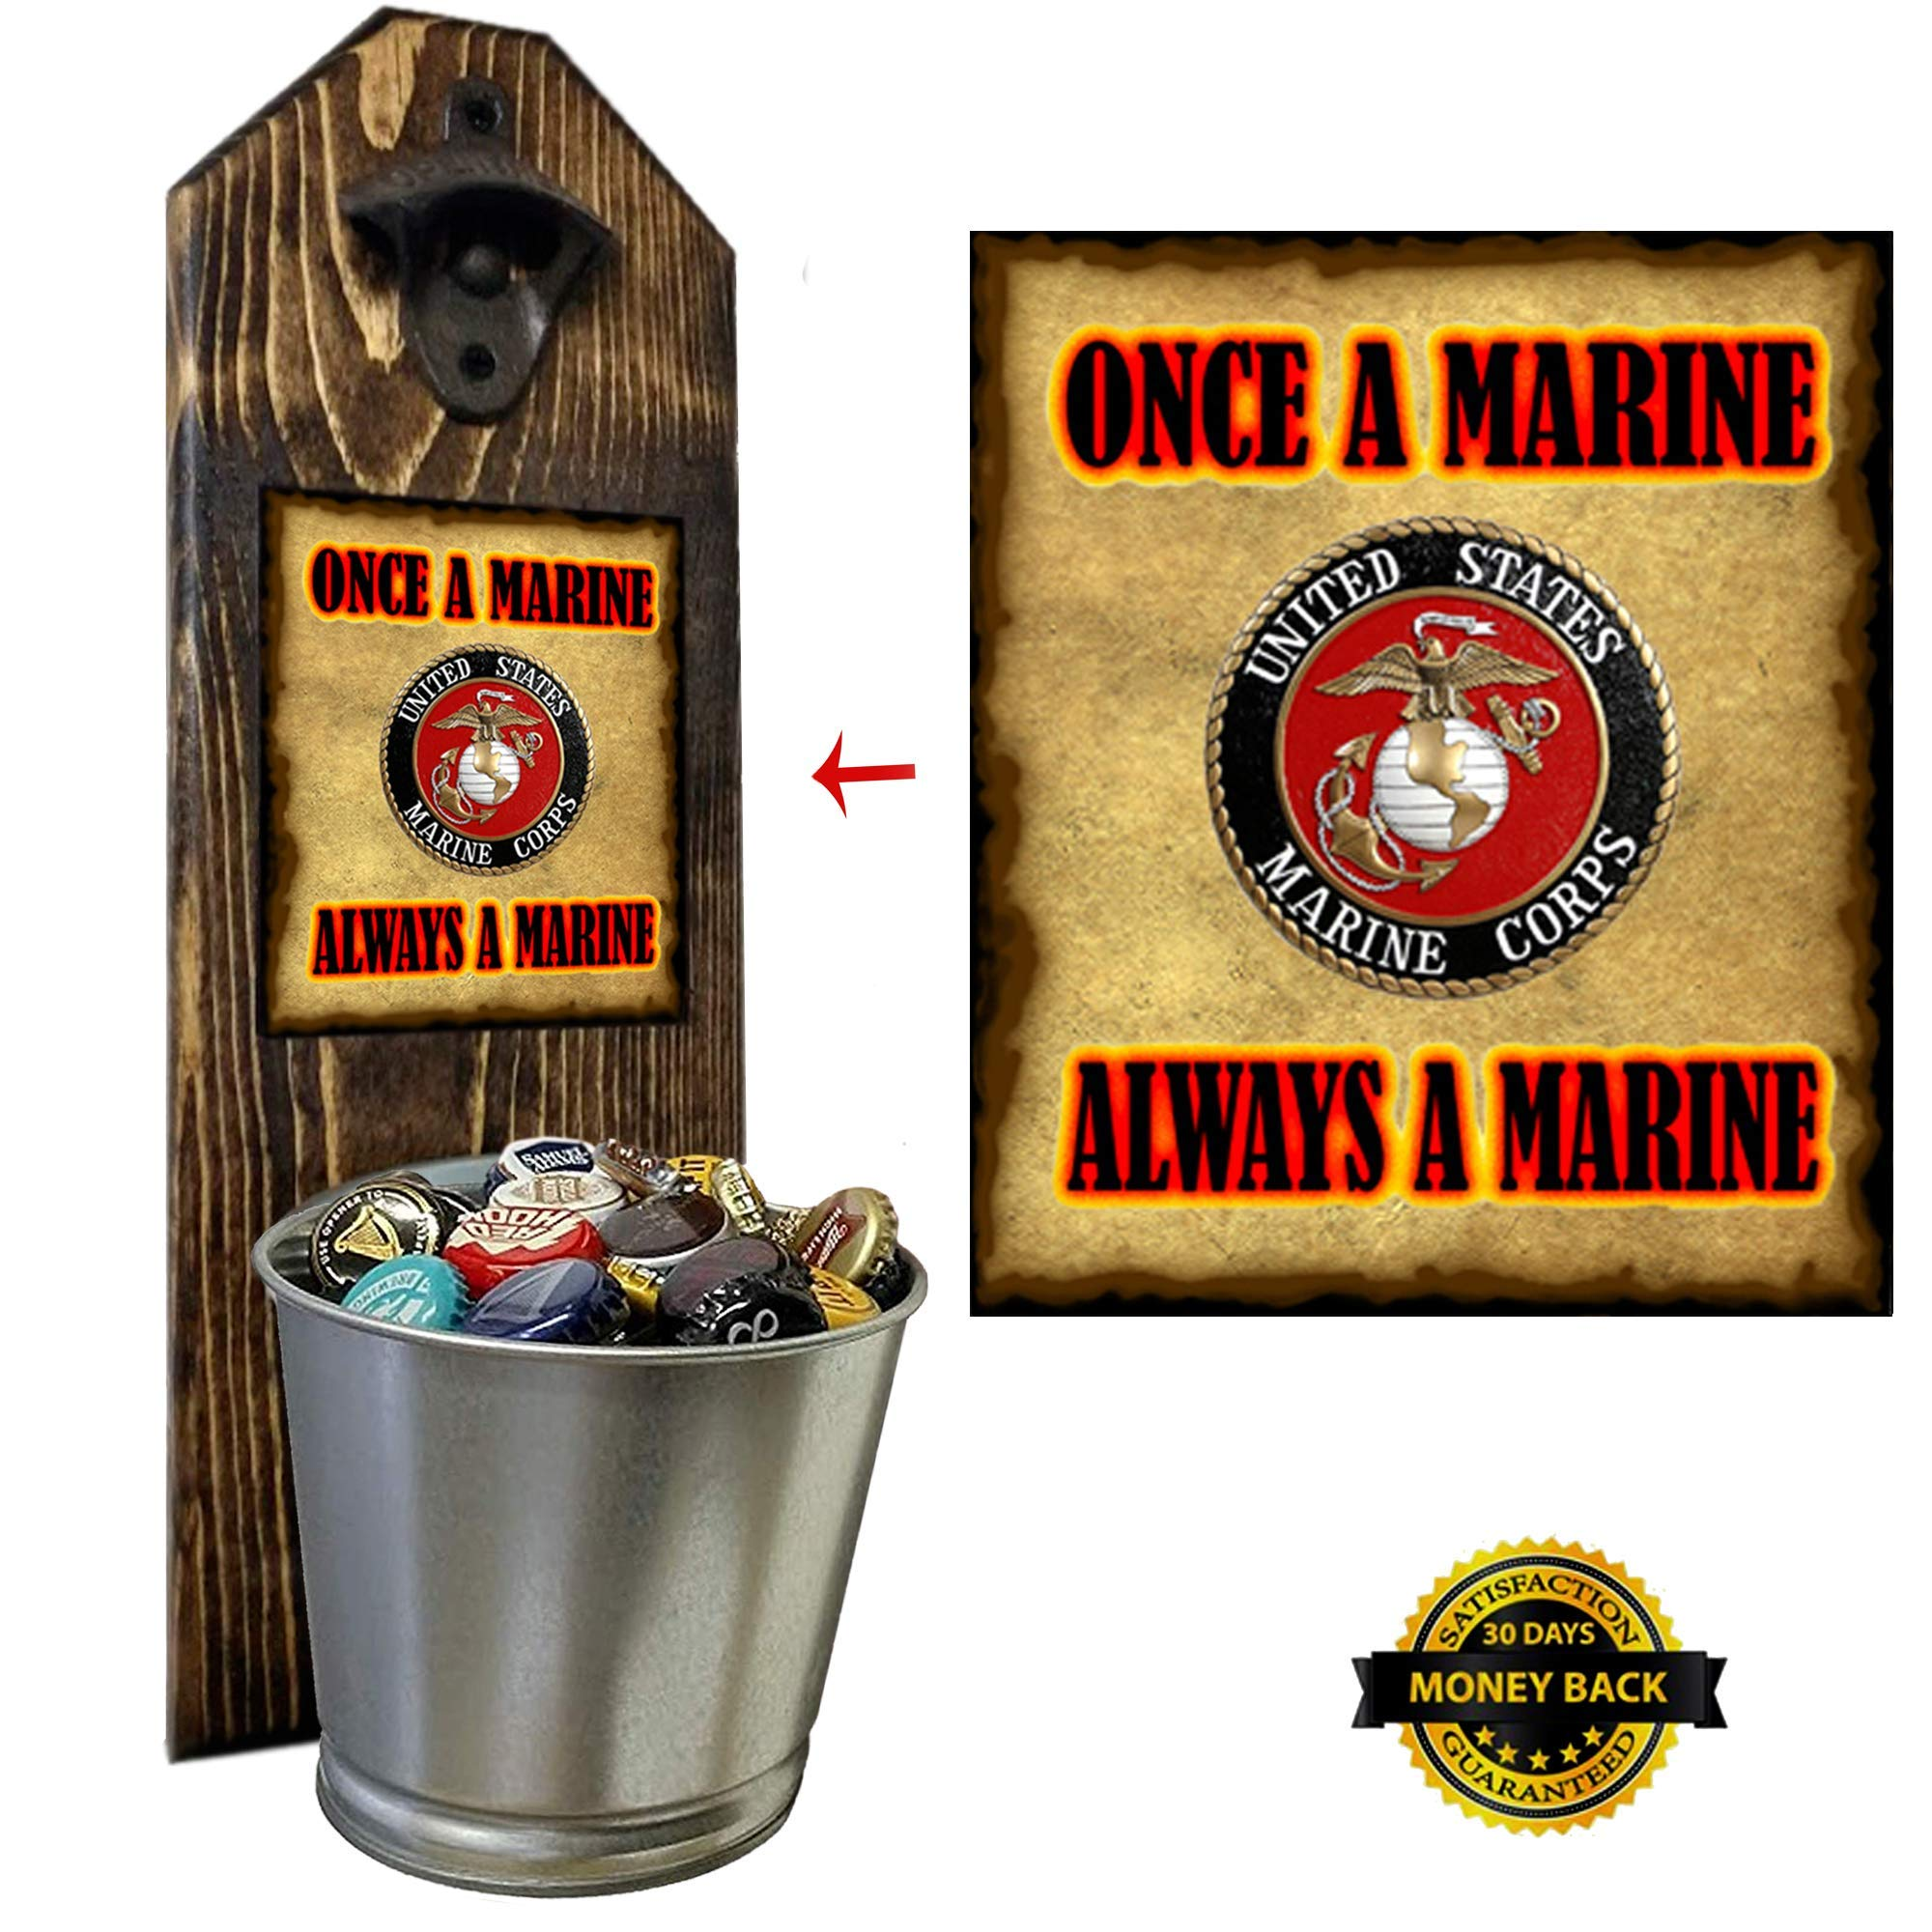 ''Marine Corps'' Bottle Opener and Cap Catcher, Wall Mounted - Handcrafted by a Vet - 100% Solid Pine 3/4'' Thick - Rustic Cast Iron Opener and Galvanized Bucket - Great Veteran Gift! Semper Fi!